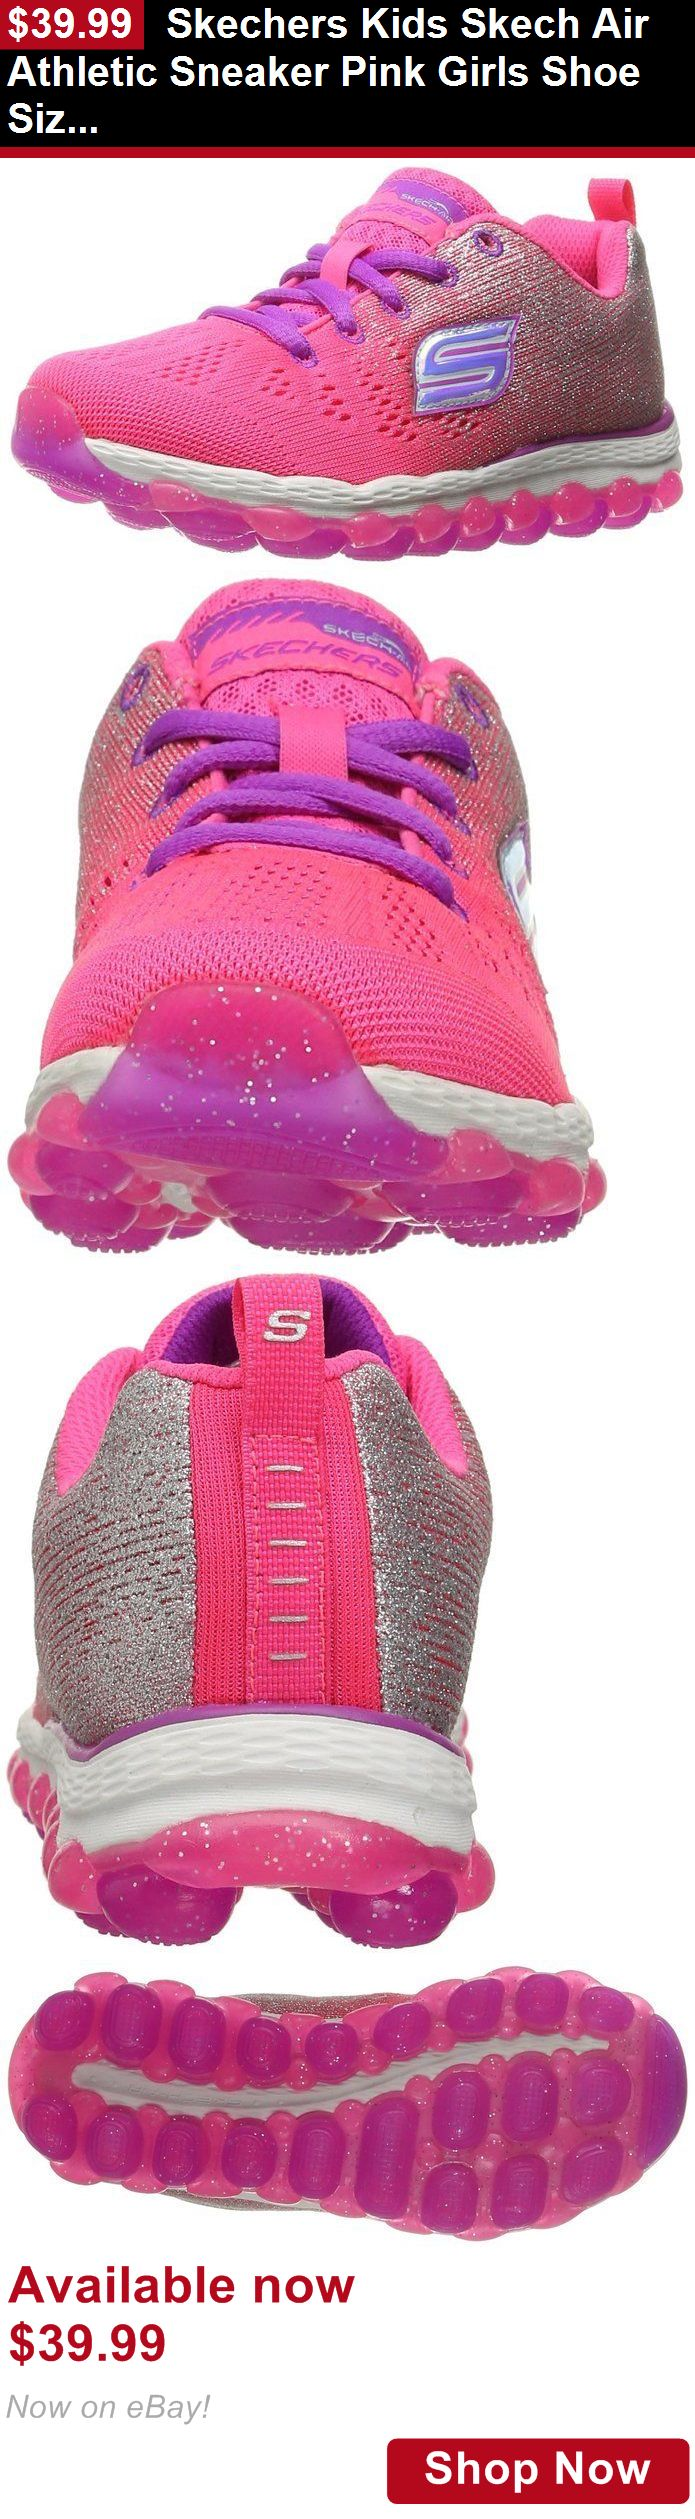 Children girls clothing shoes and accessories: Skechers Kids Skech Air Athletic Sneaker Pink Girls Shoe Size 11-4 BUY IT NOW ONLY: $39.99